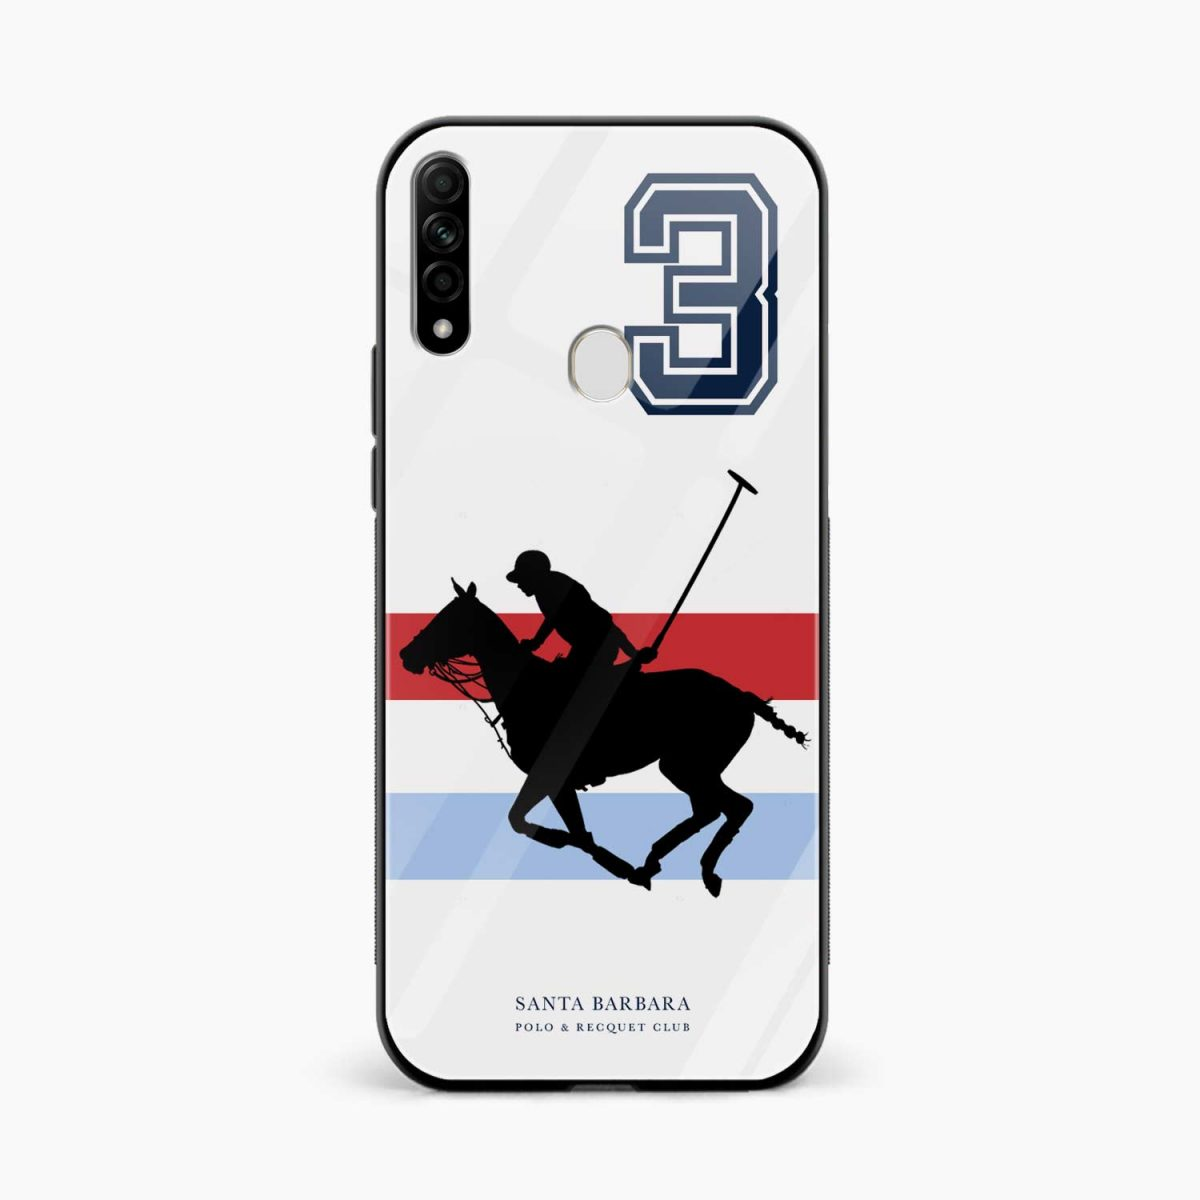 sant barbara polo front view oppo a31 back cover